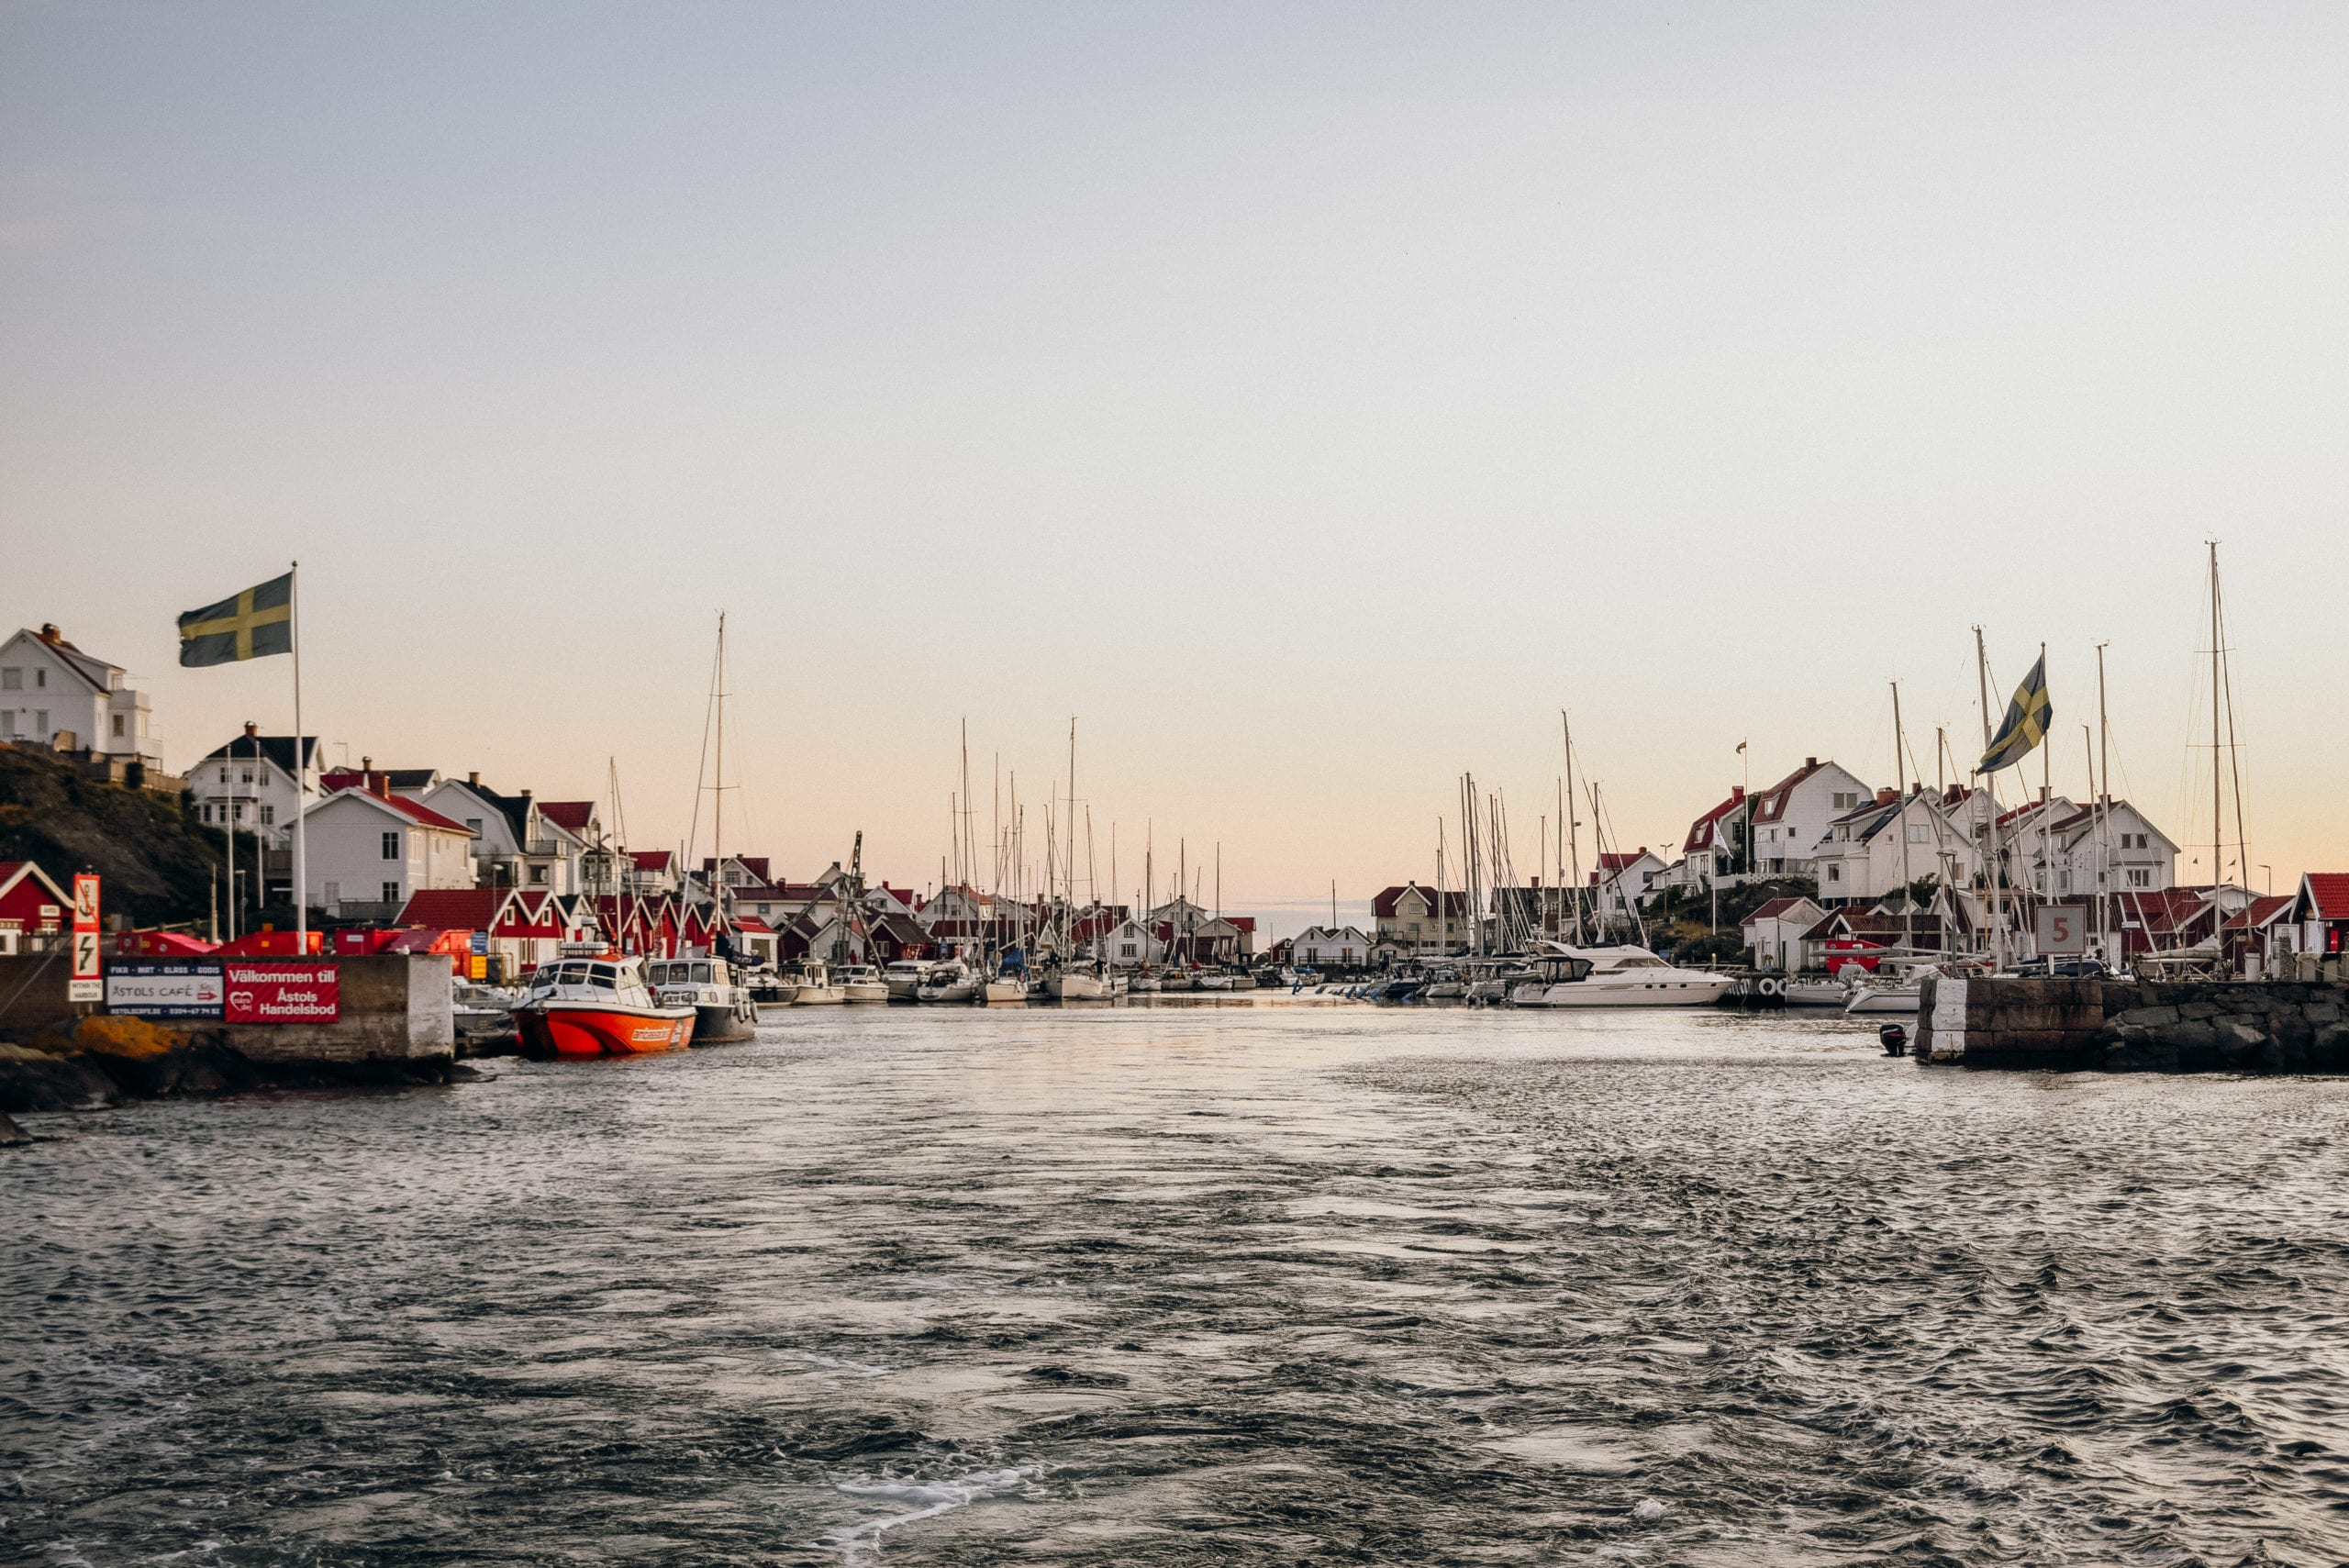 A Slow Travel Guide To West Sweden And The Bohuslän Archipelago - Astol